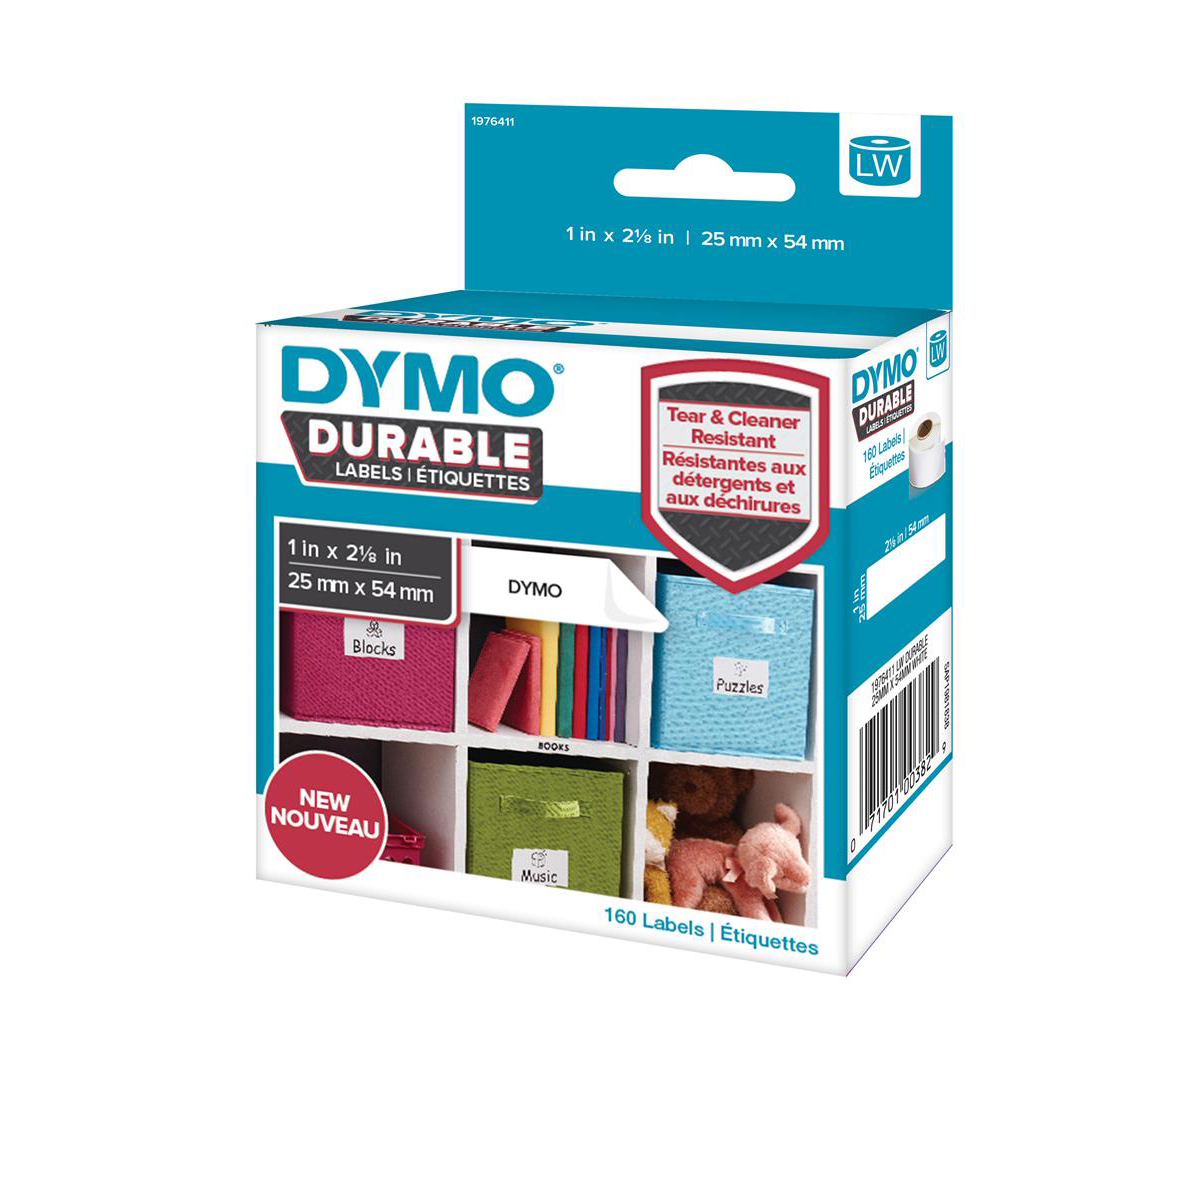 Dymo Durable Labels D1 Tape Temperature UV and Water Resistant 25mmx54mm White Ref 1976411 Pack 160